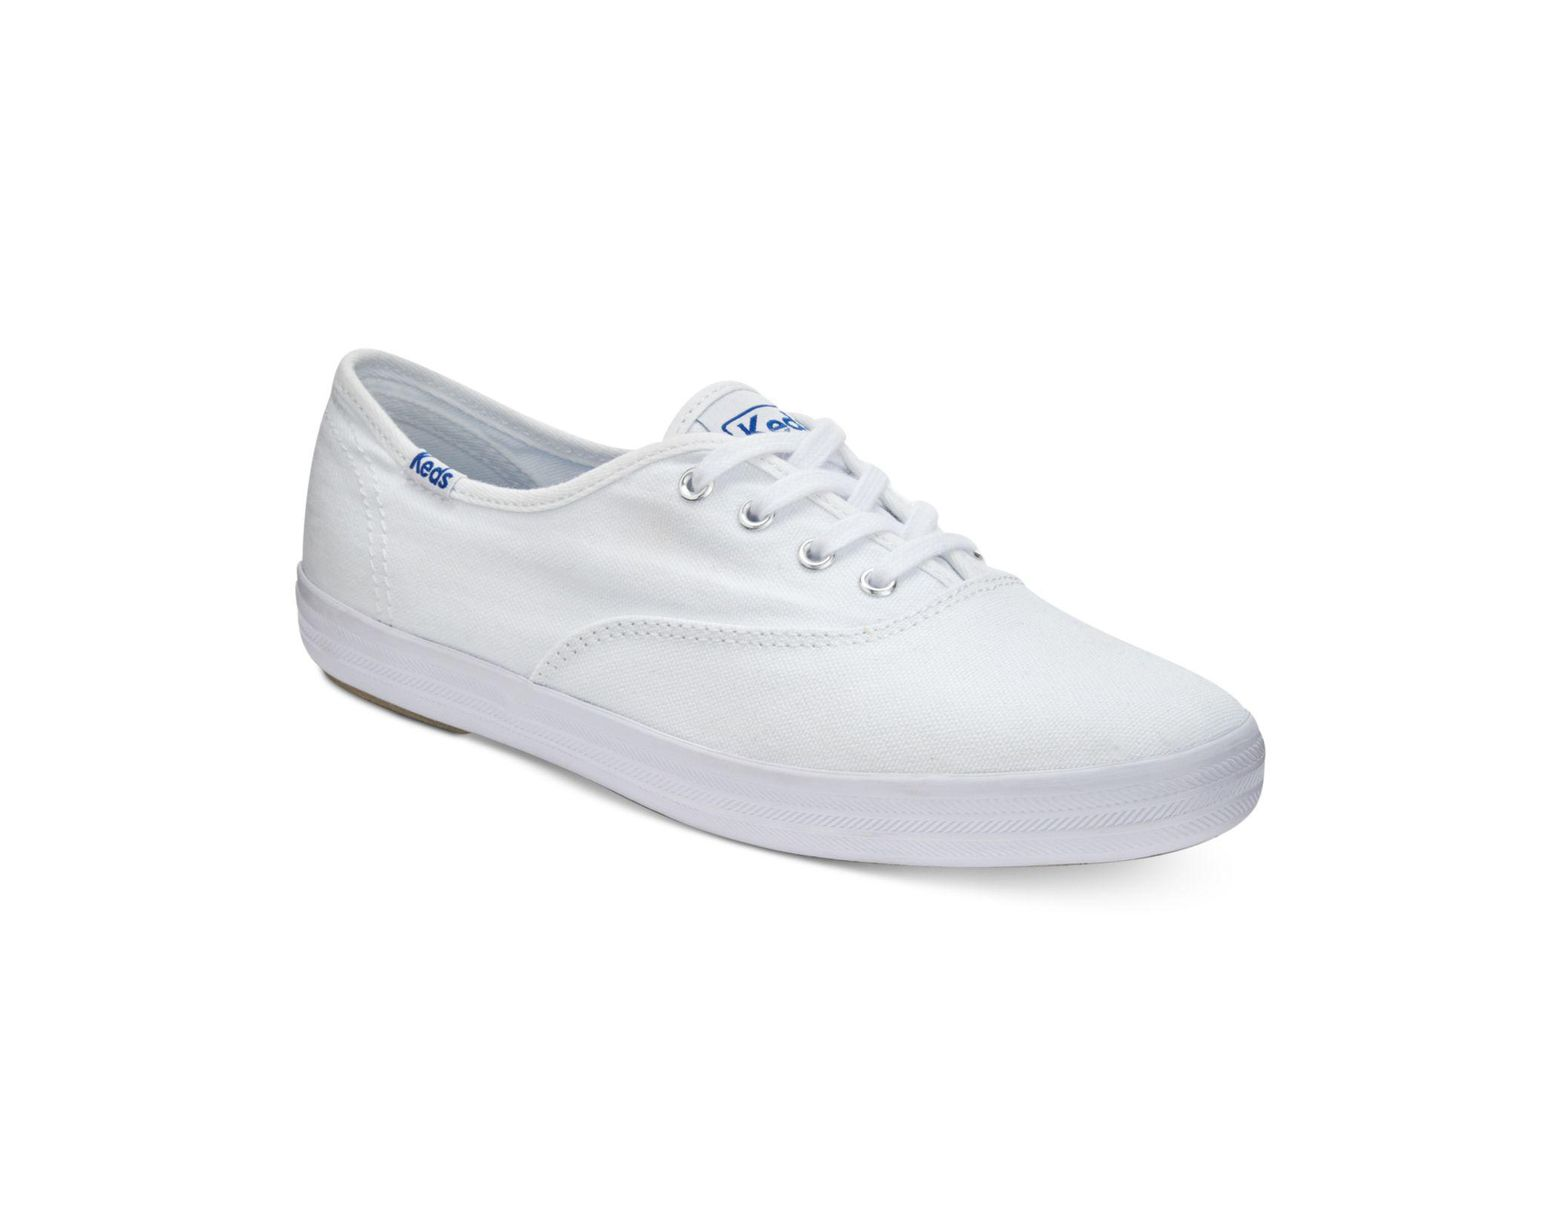 a667ea3fa40b5 Keds Champion Ortholite® Lace-up Oxford Fashion Sneakers in White - Lyst